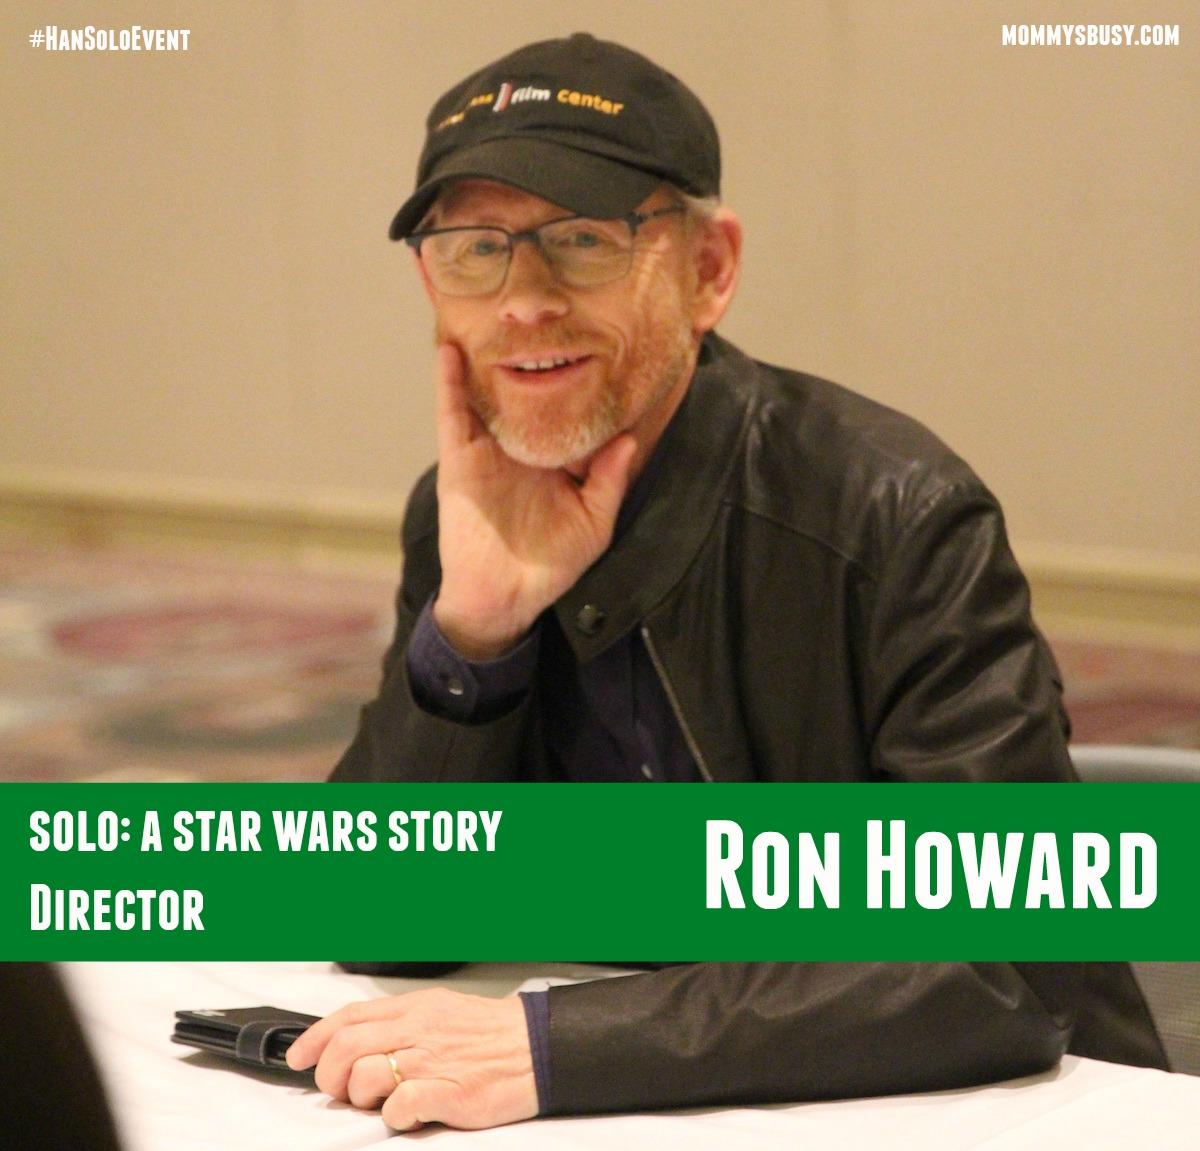 Ron Howard SOLO #HanSoloEvent